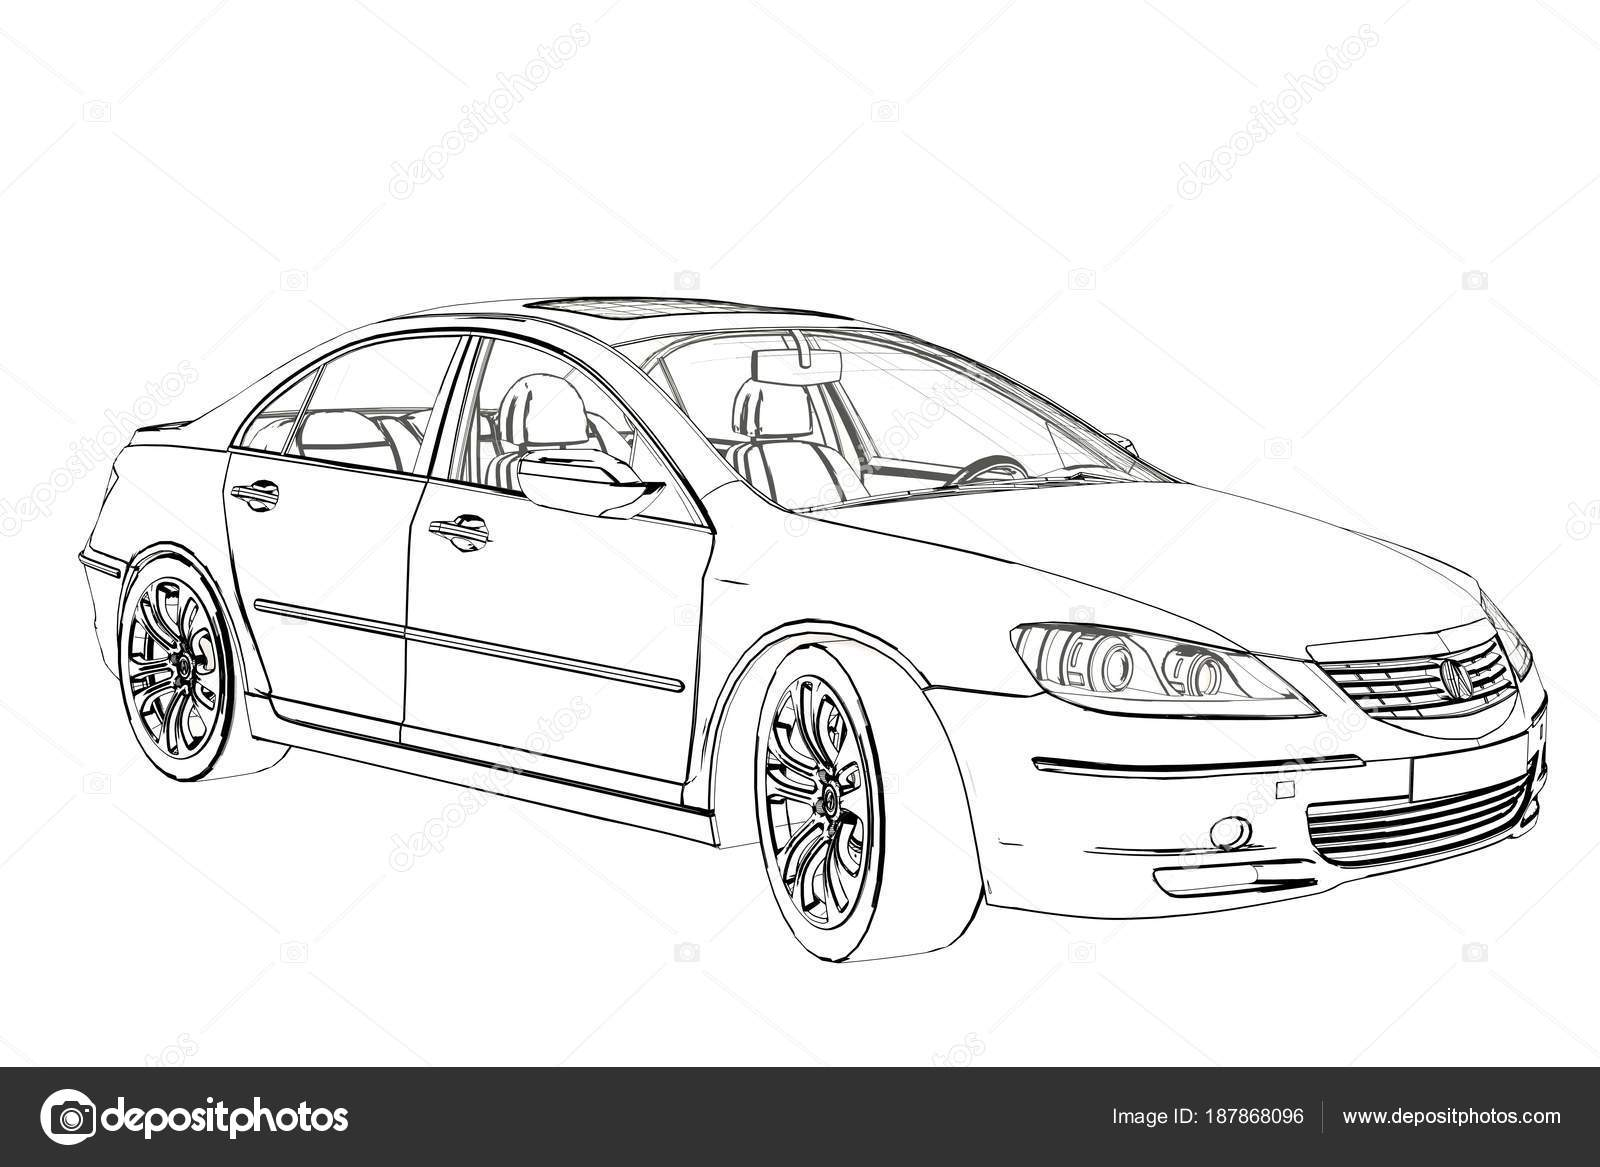 Luxury Car Acura Rl Sketch 3d Illustration Stock Editorial Photo